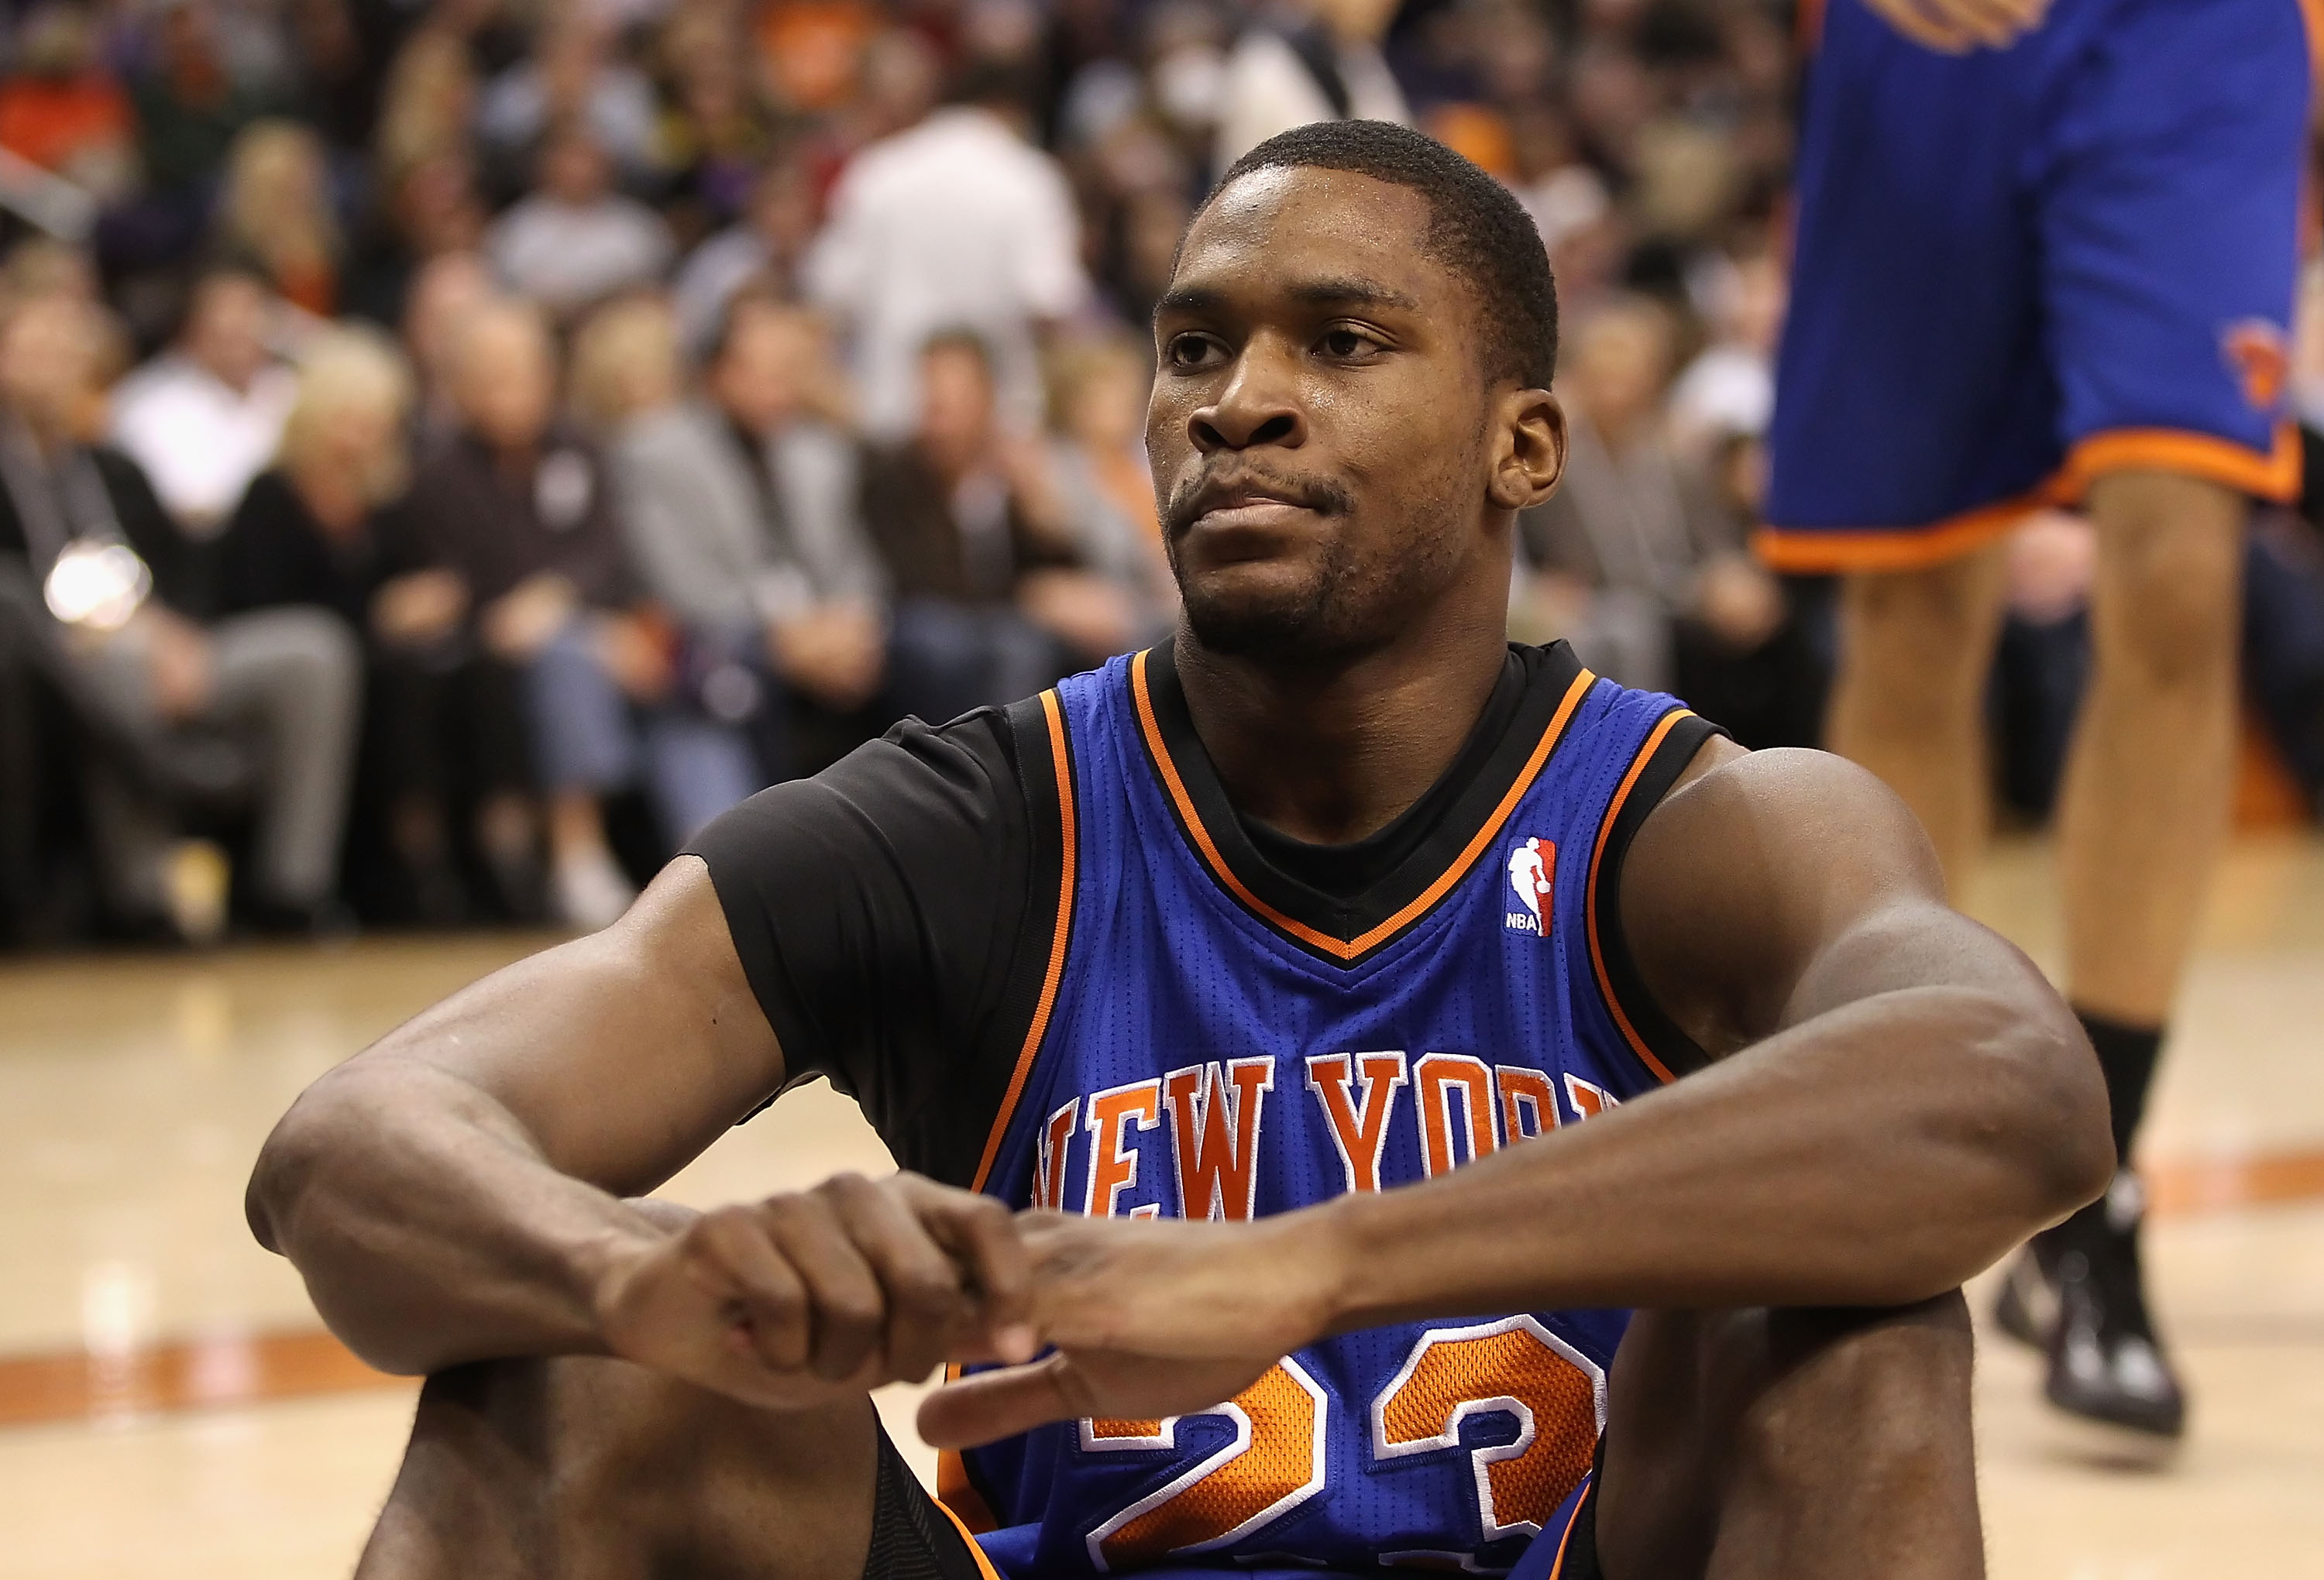 PHOENIX, AZ - JANUARY 07:  Toney Douglas #23 of the New York Knicks during the NBA game against the Phoenix Suns at US Airways Center on January 7, 2011 in Phoenix, Arizona.  NOTE TO USER: User expressly acknowledges and agrees that, by downloading and or